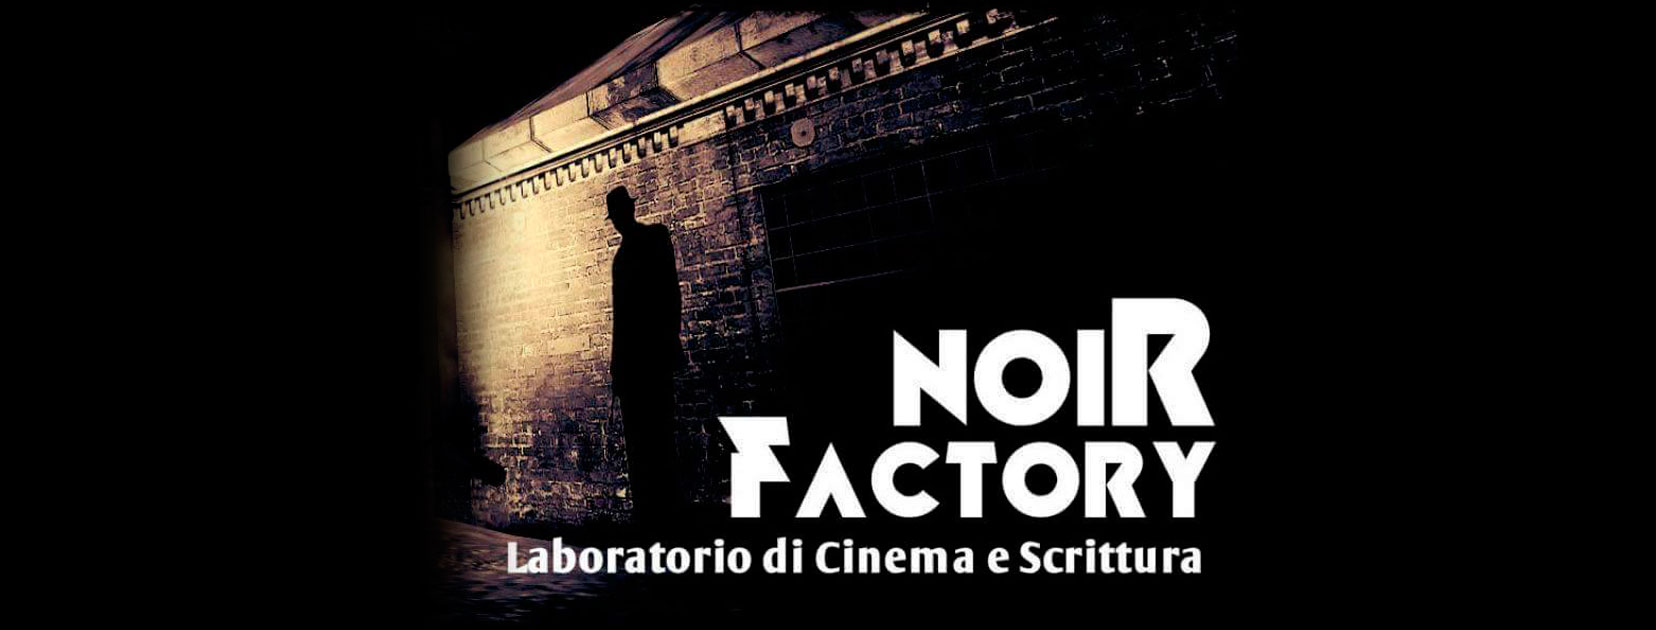 Noir Factory Laboratorio di Cinema e Scrittura Creativa